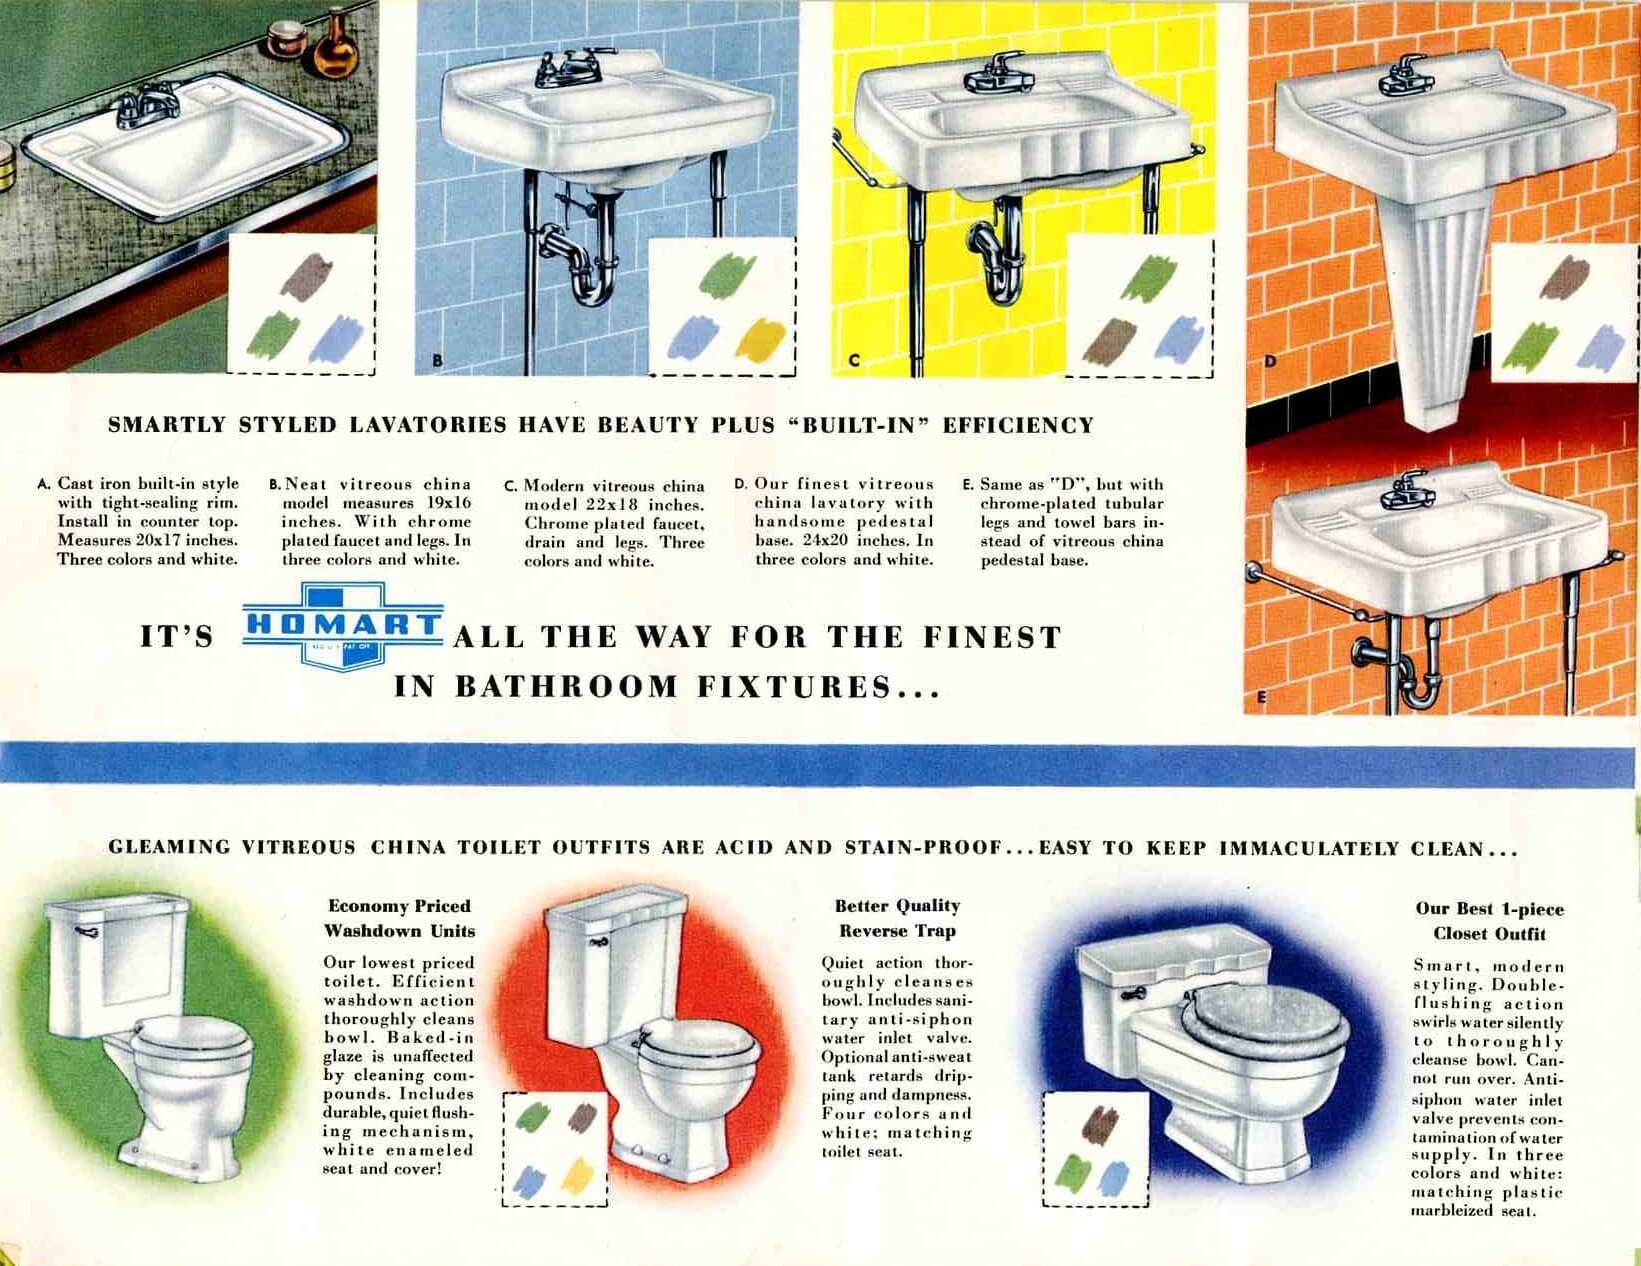 1955-bathroom-sinks.jpg